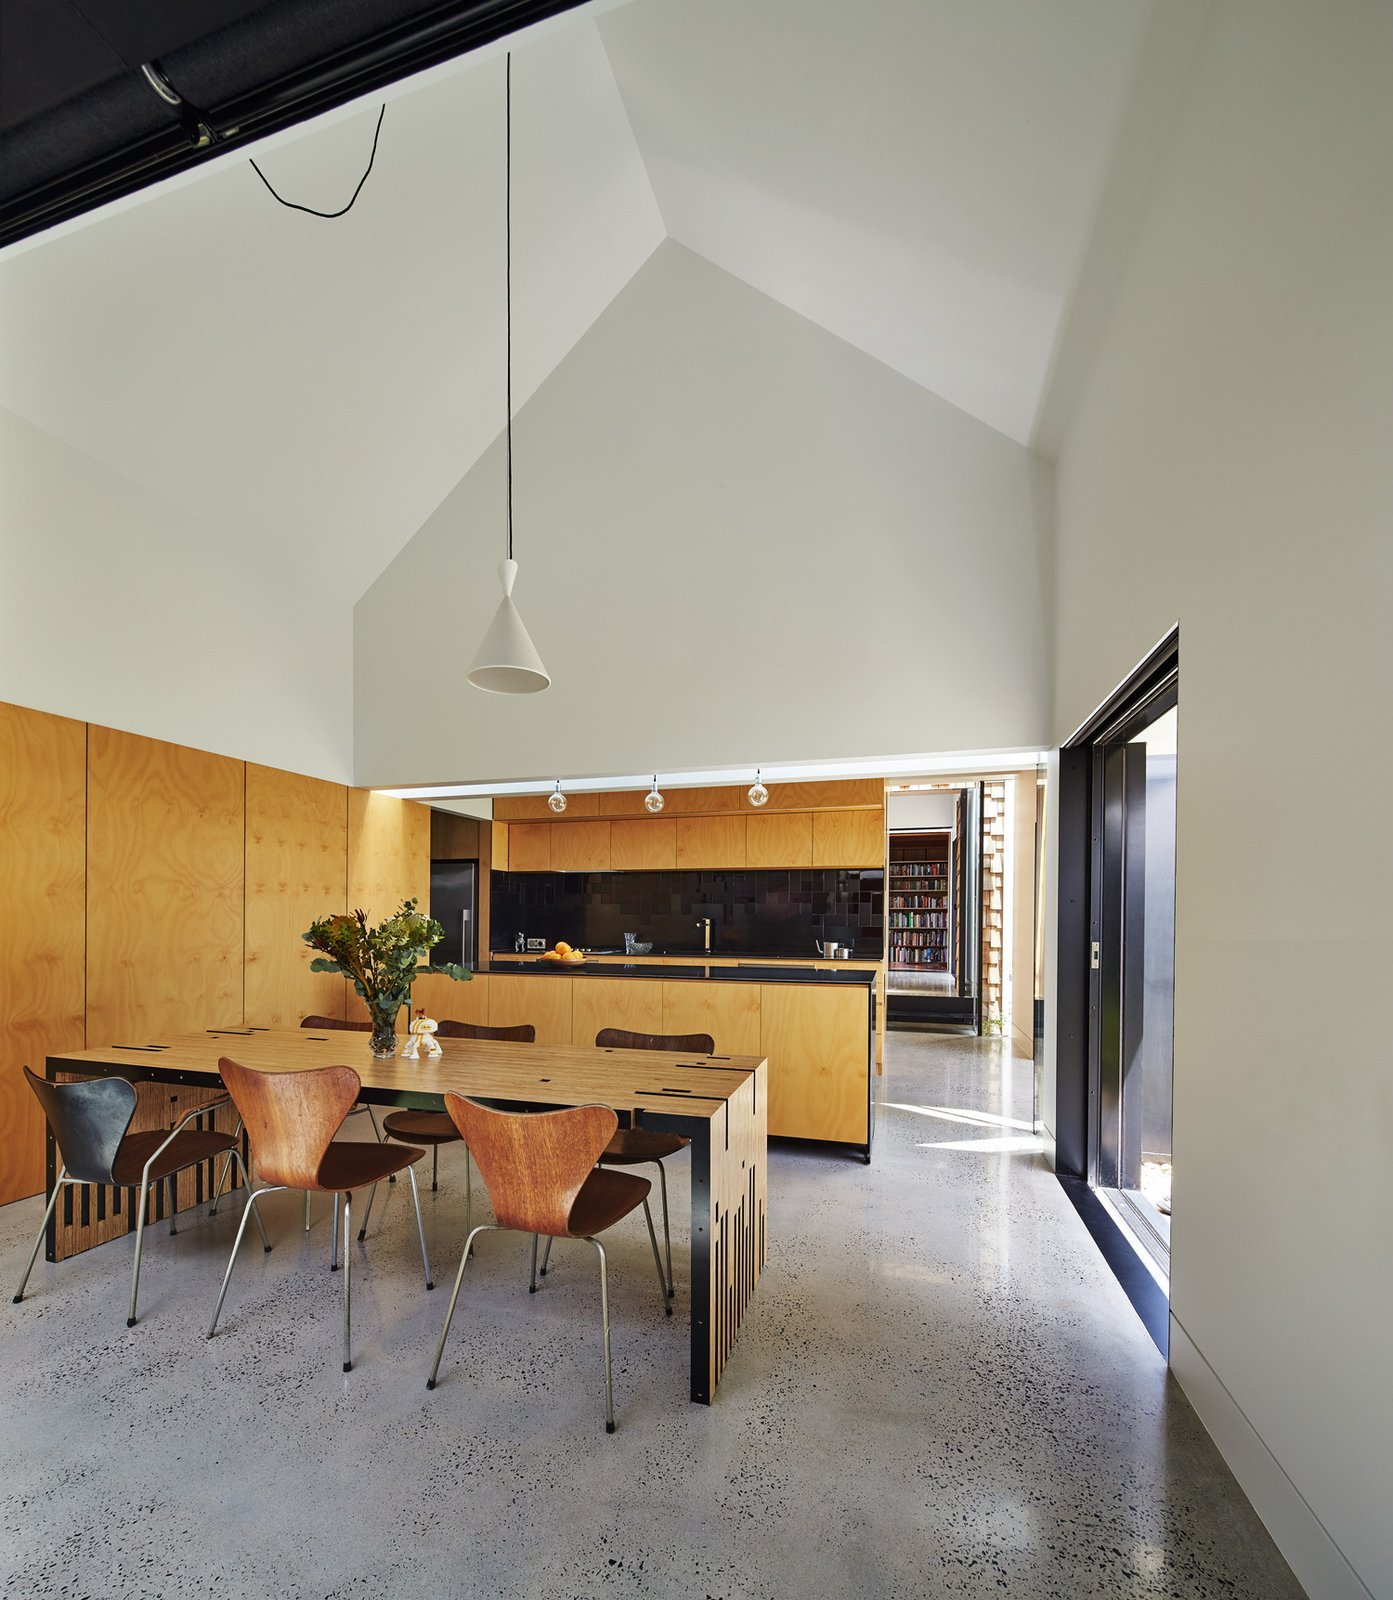 """The dining room serves as the hub for all activity. Original Series 7 chairs by Arne Jacobsen complement a table Maynard designed and dubbed the """"Zero Waste Table,"""" since it utilizes every inch of a large wood sheet. To the right, a sliding door opens to the garden. Tagged: Dining Room, Pendant Lighting, Chair, and Table.  Photo 7 of 12 in This Transformed Melbourne House Resembles a Quirky Village"""